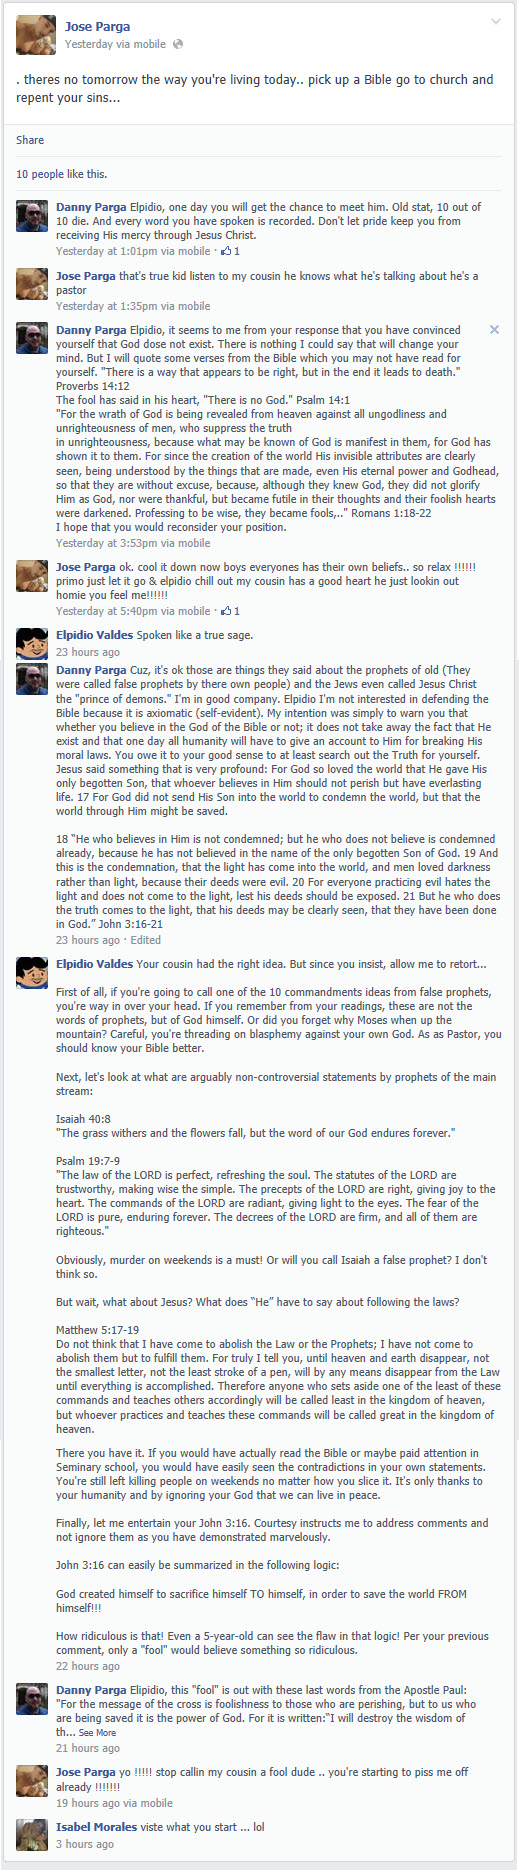 Edited Facebook debate between Elpidio Valdes and Pastor Daniel Praga